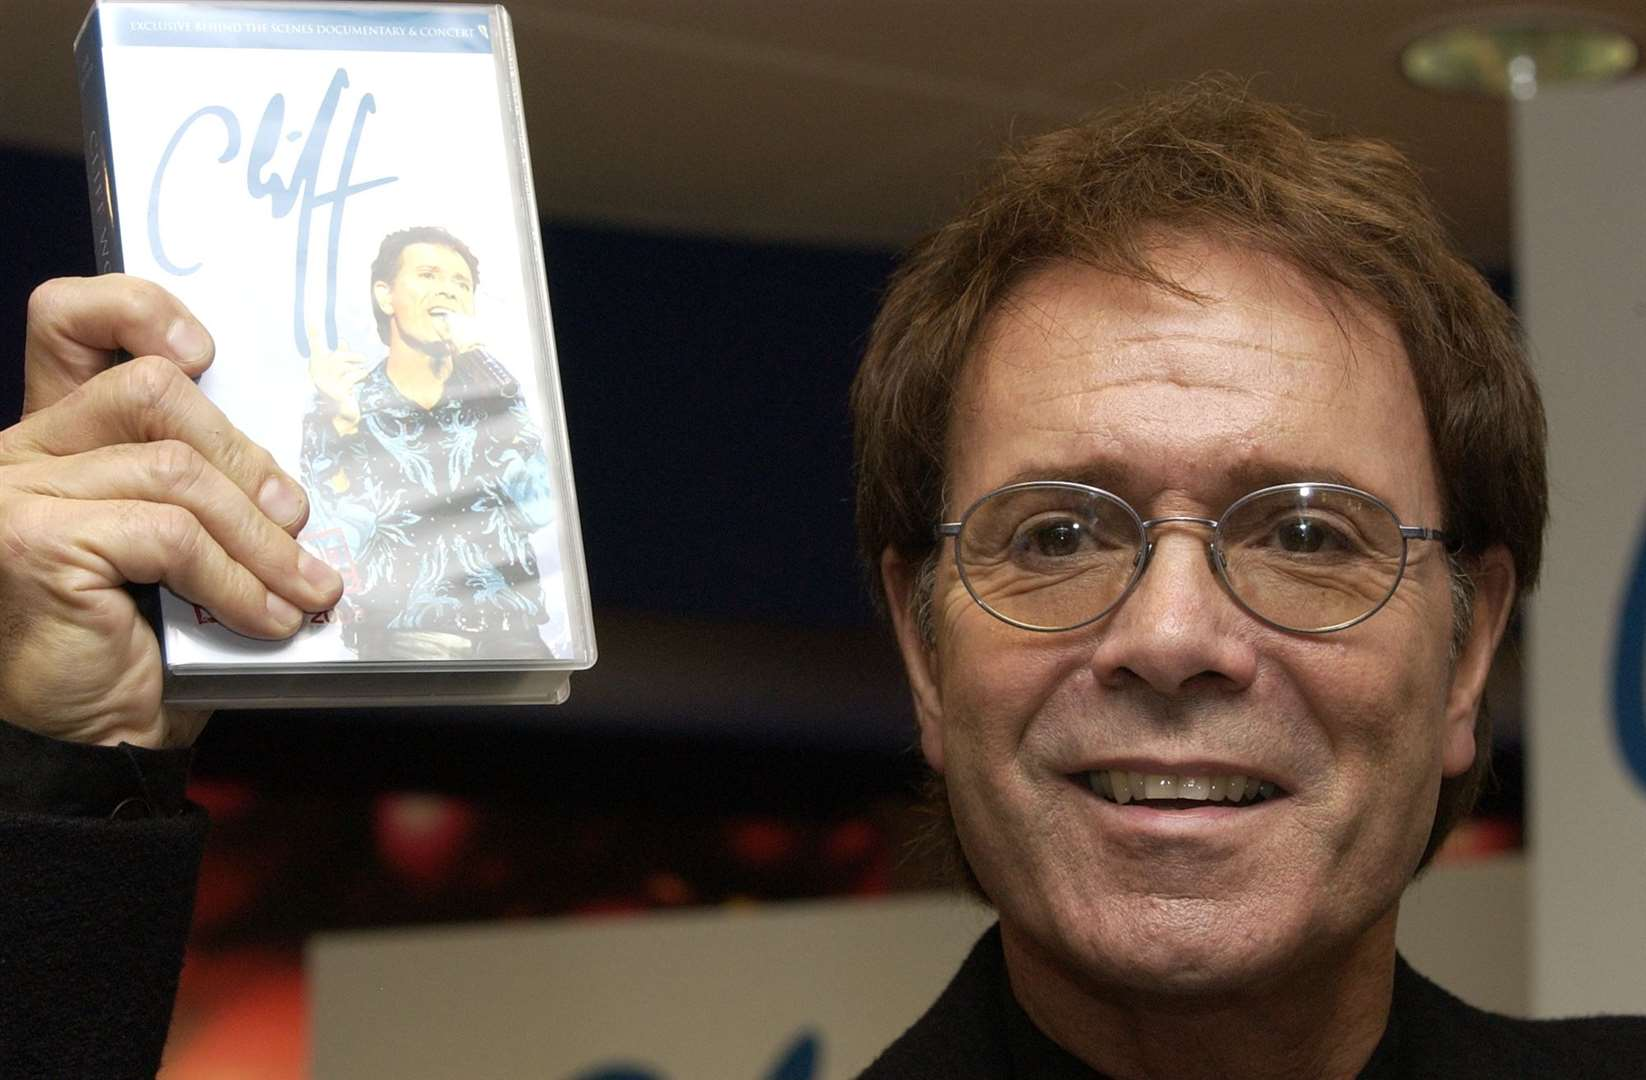 Sir Cliff Richard attends a DVD and video signing of his tour in 2003 at Bluewater. Picture: Andy Payton